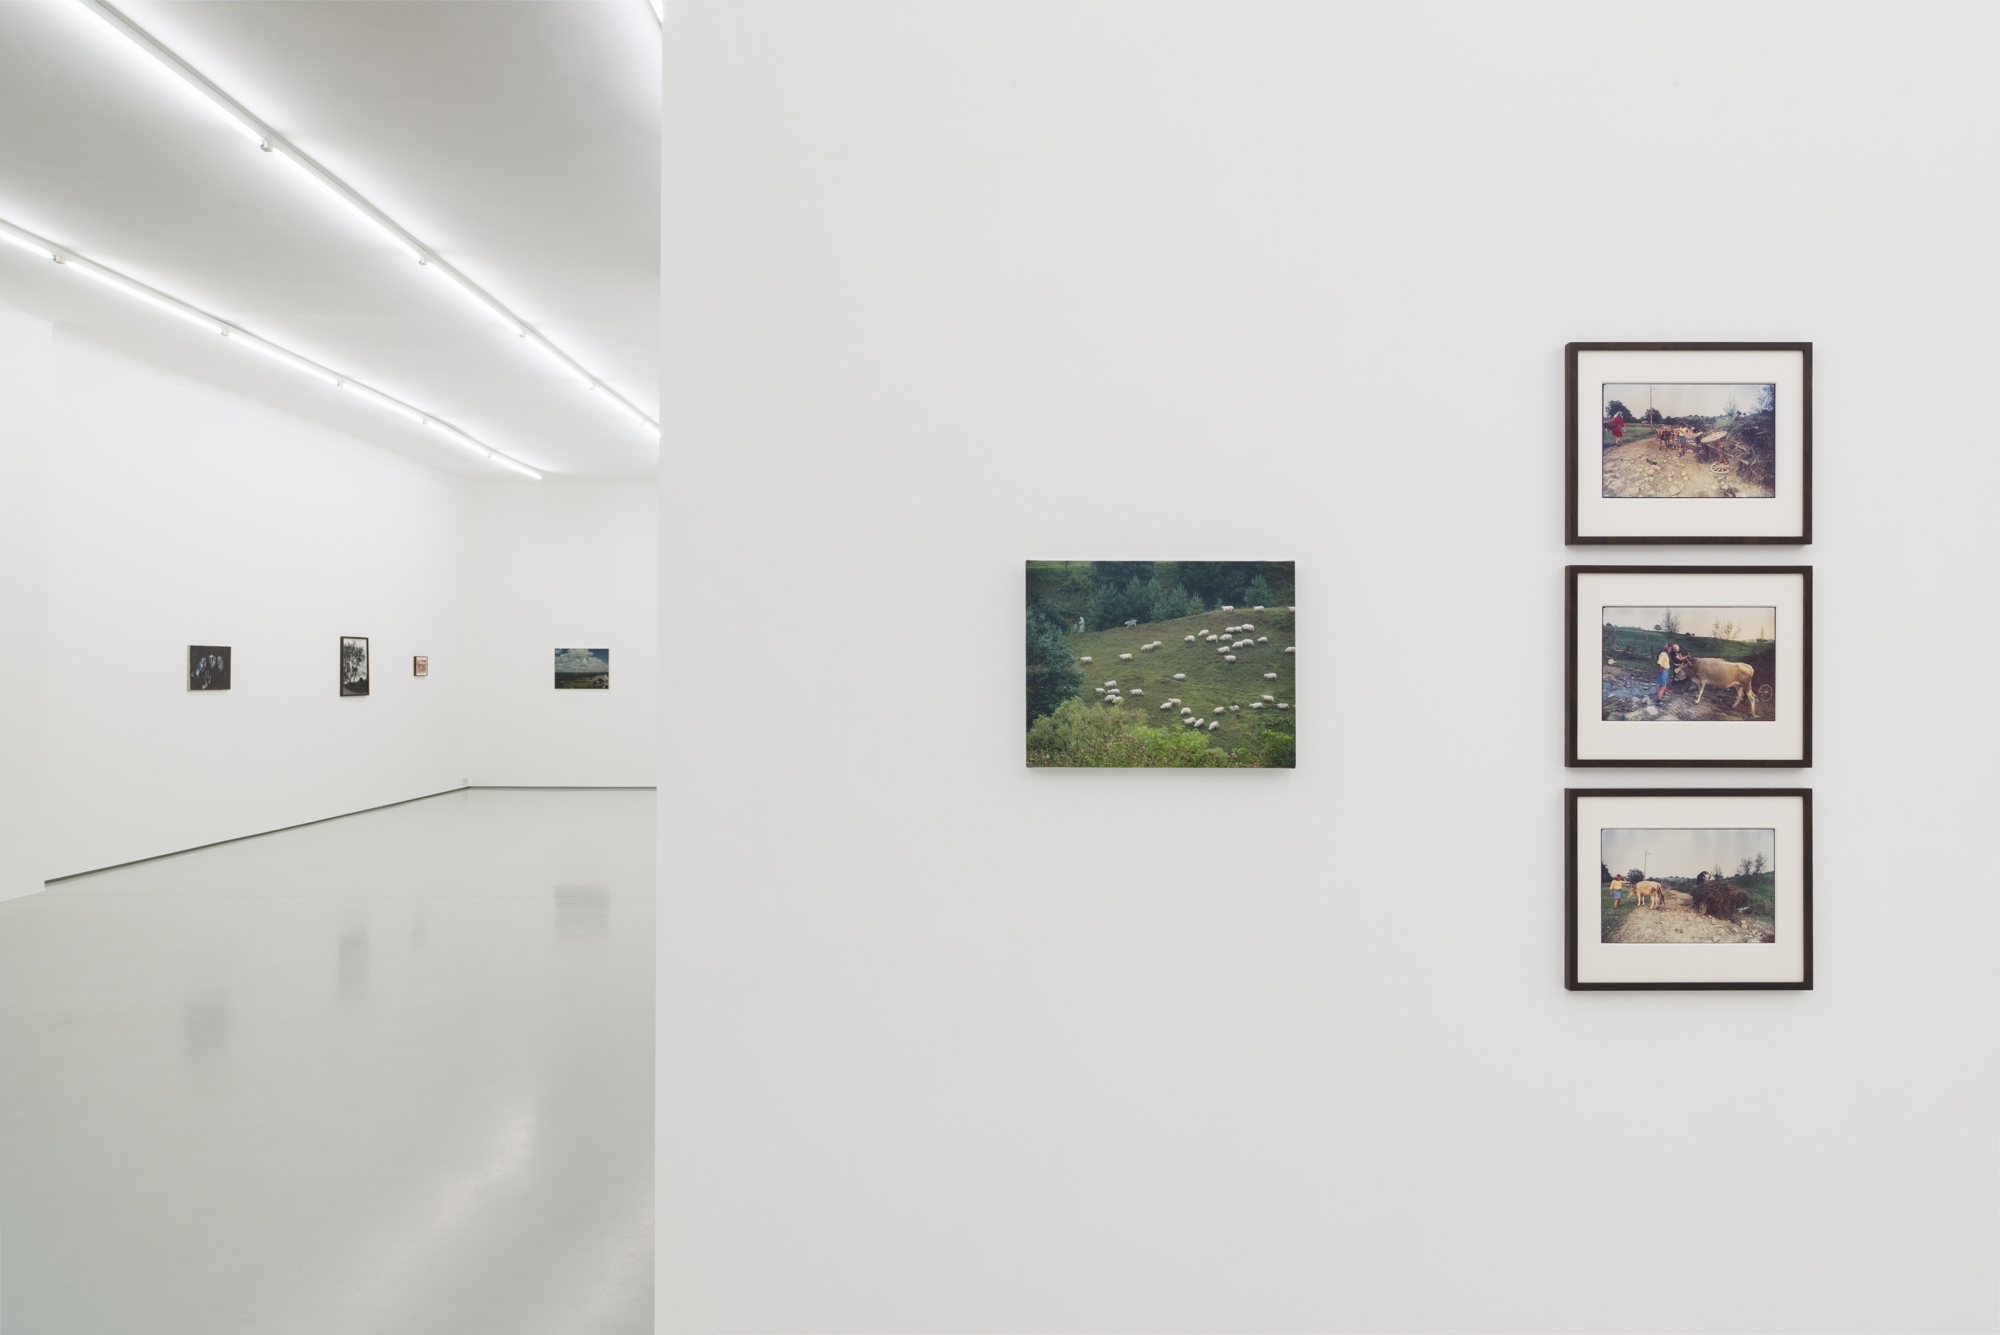 Ion Grigorescu, Commentary upon Nature, exhibition view, Gregor Podnar, 2019. Photo: Marcus Schneider